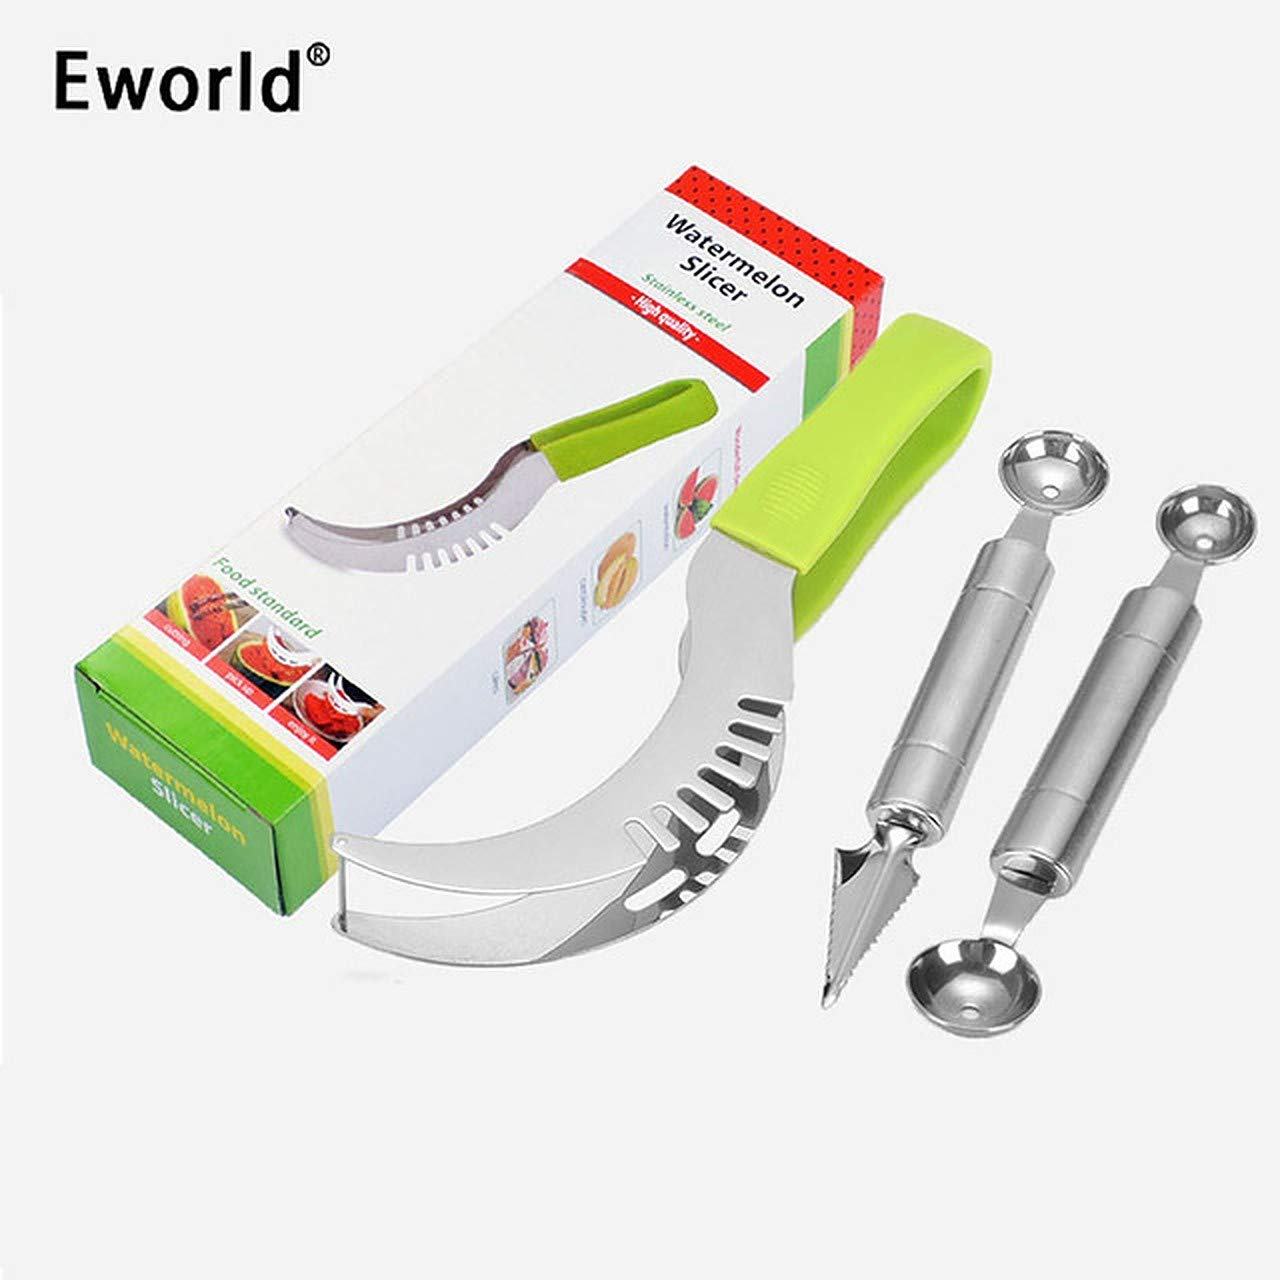 Watermelon Slicer with Carving Knife and Melon Baller Scoop Kit Stainless Steal Fruit Set by Eworld Watermelon Slicer